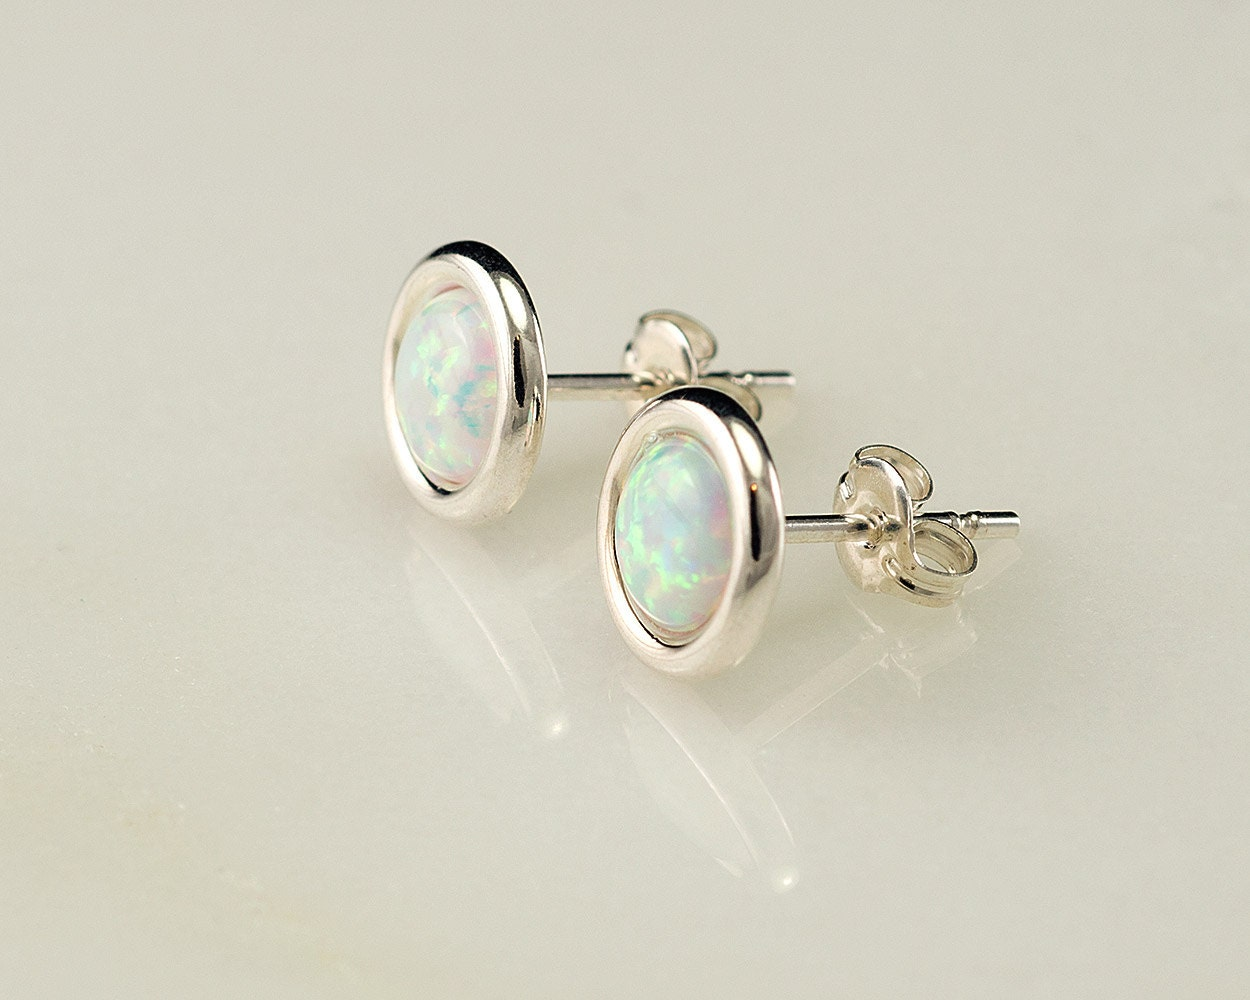 opal ball silver amp image sterling white by real david birthstones stud earrings studs deyong